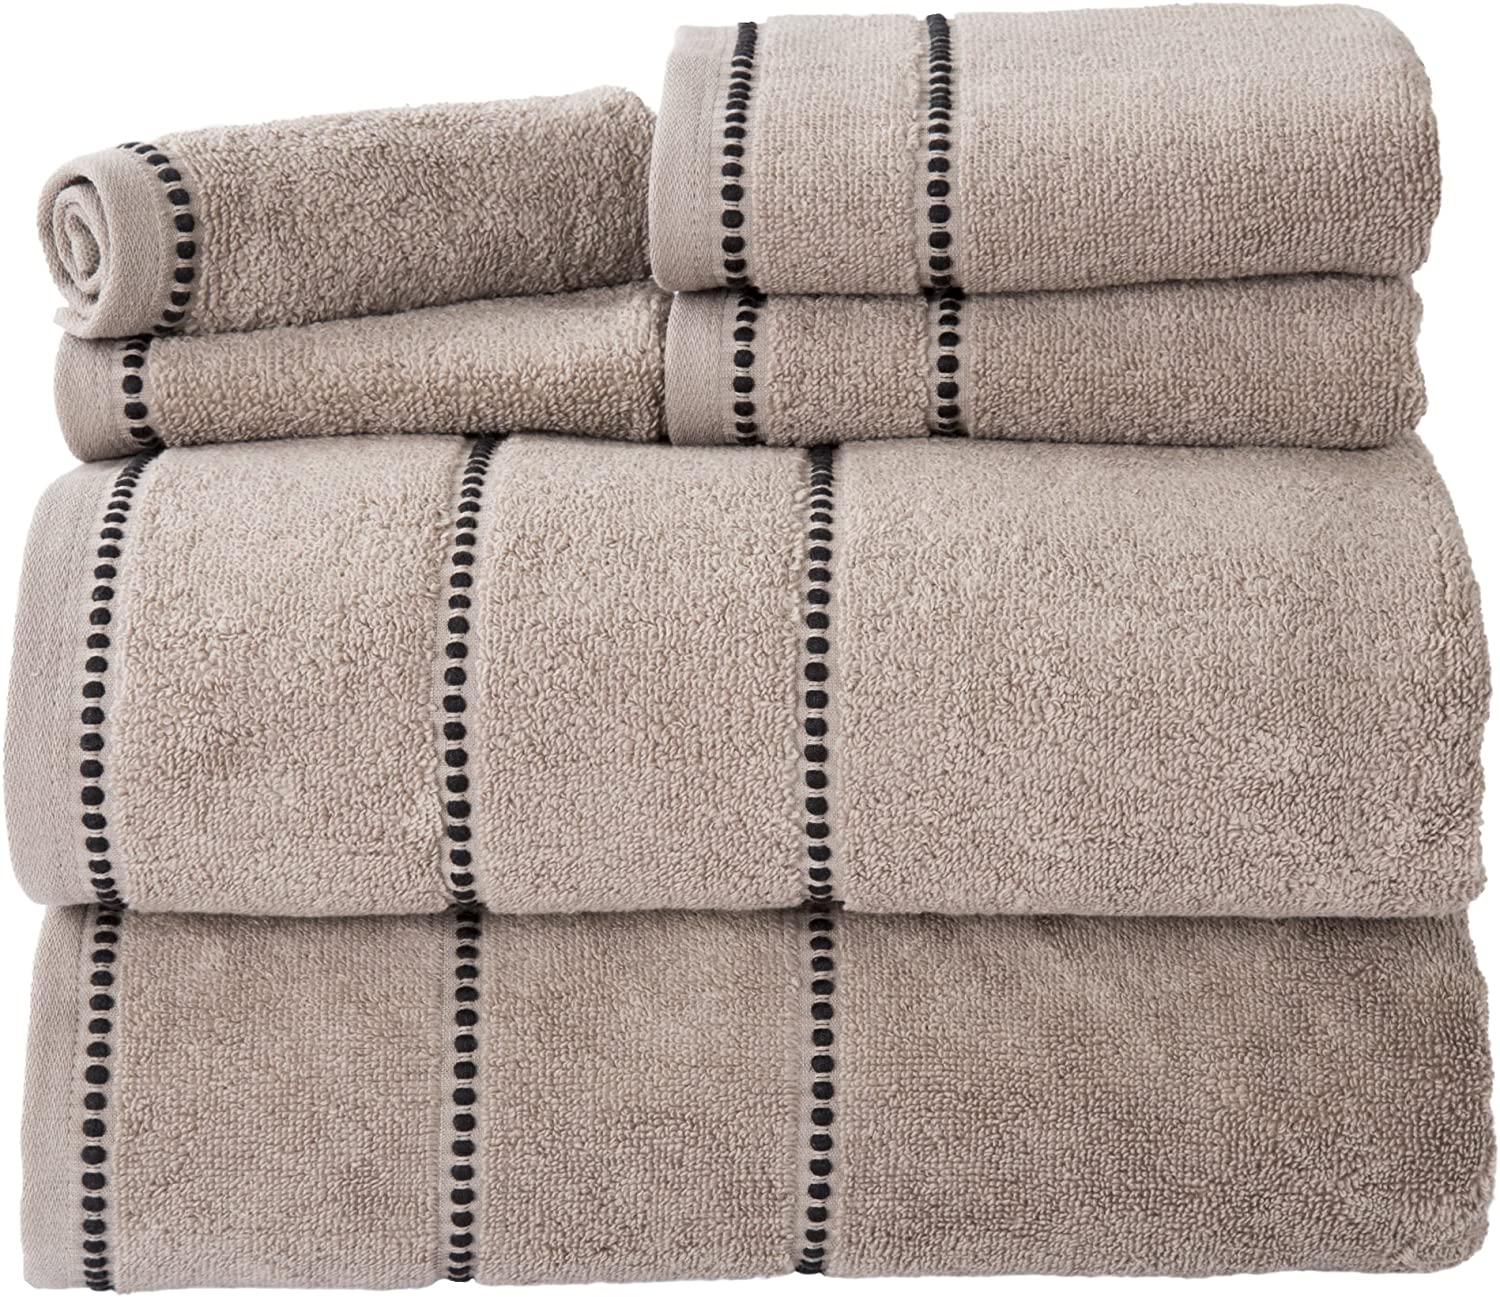 Luxury Cotton Towel Set- Quick Dry, Zero Twist and Soft 6 Piece Set With 2 Bath Towels, 2 Hand Towels and 2 Washcloths By Lavish Home (Taupe / Black)